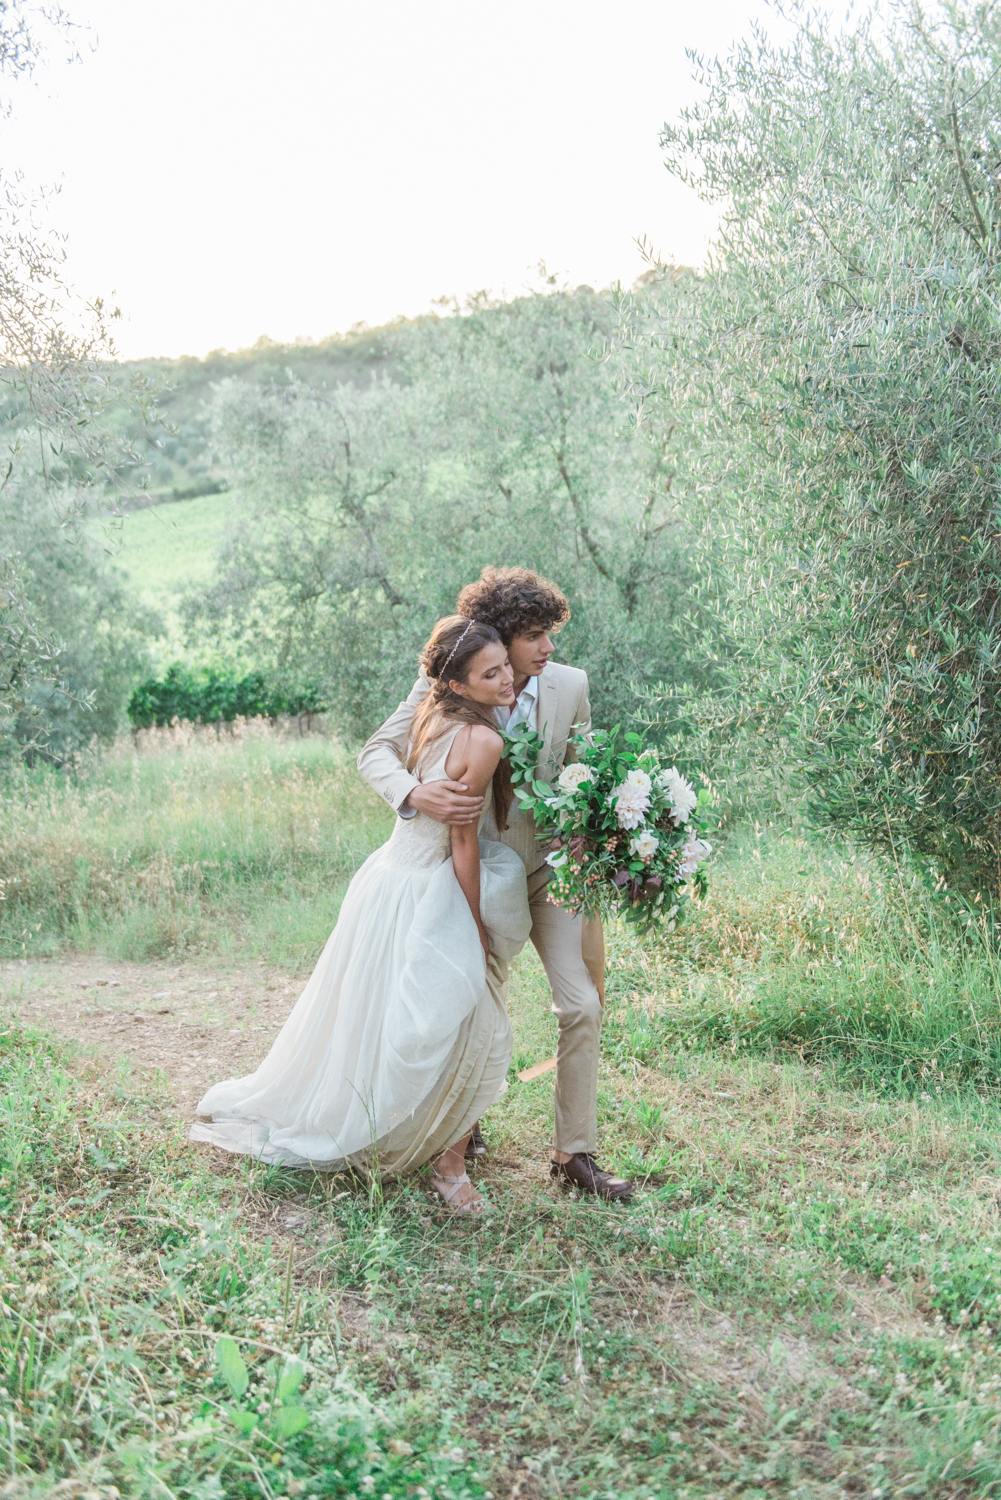 A bride and groom hugging while they walk